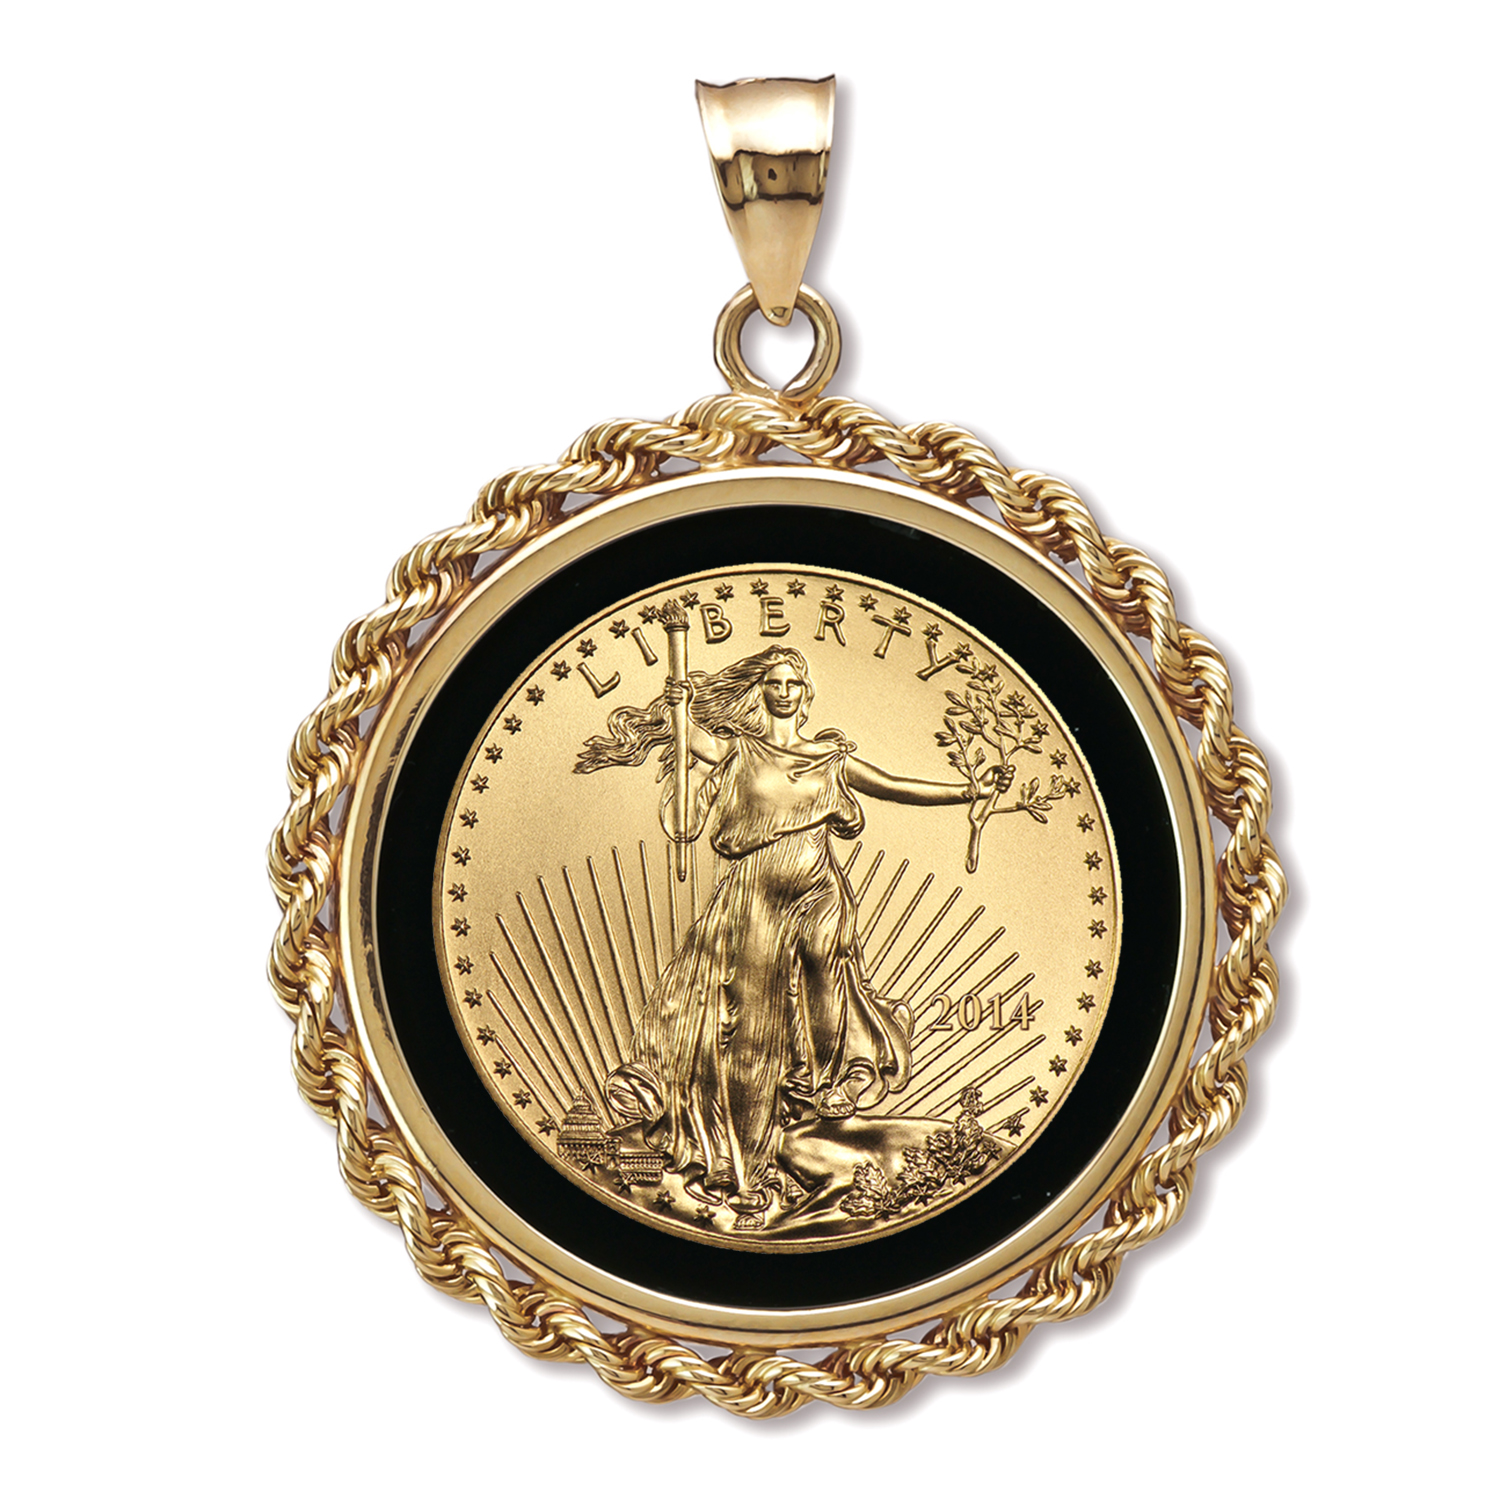 2014 1/2 oz Gold Eagle Pendant (Onyx Rope Bezel)